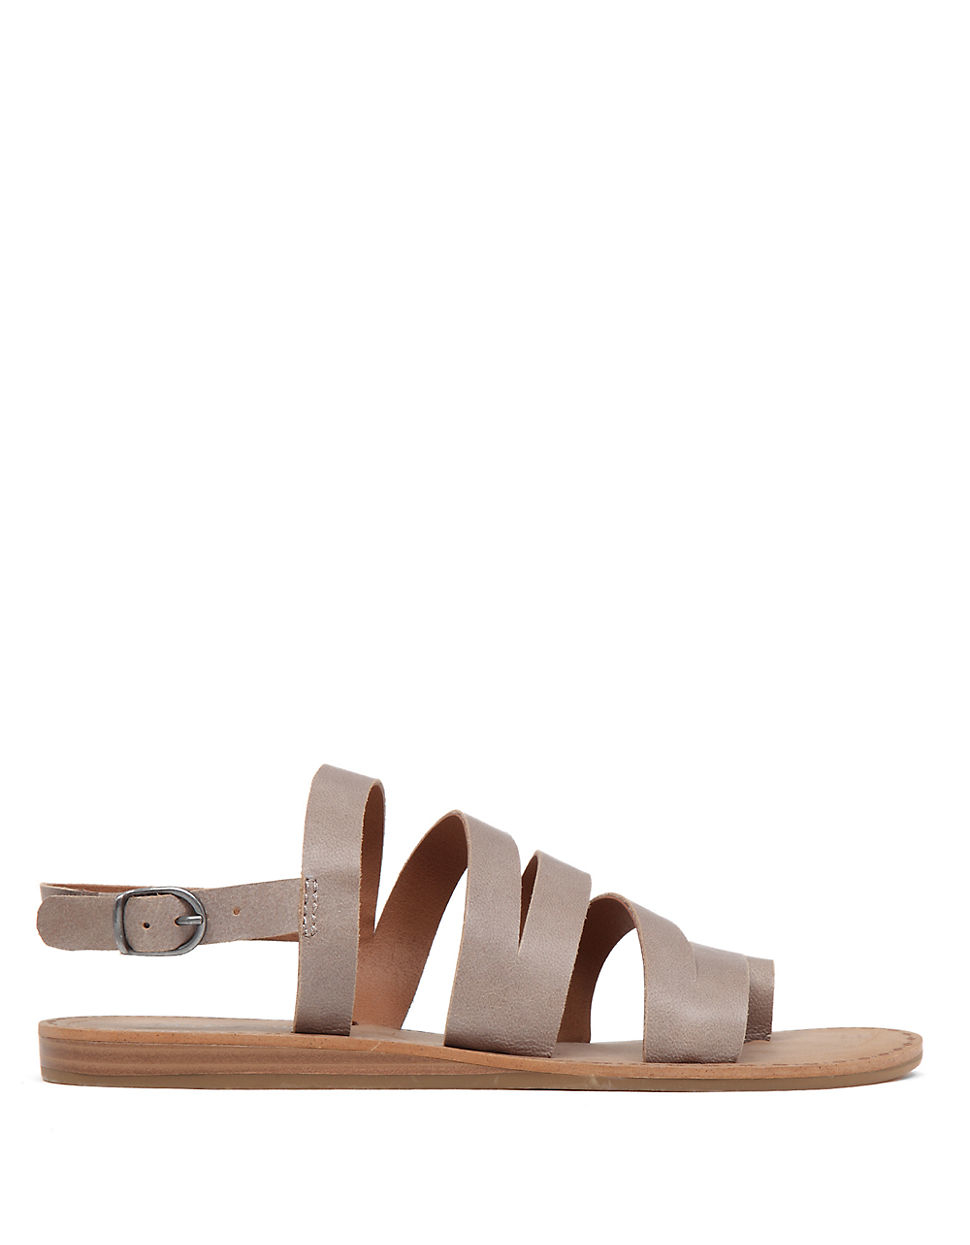 Lucky brand Fairfaxx Leather Open-toe Sandals in Gray | Lyst